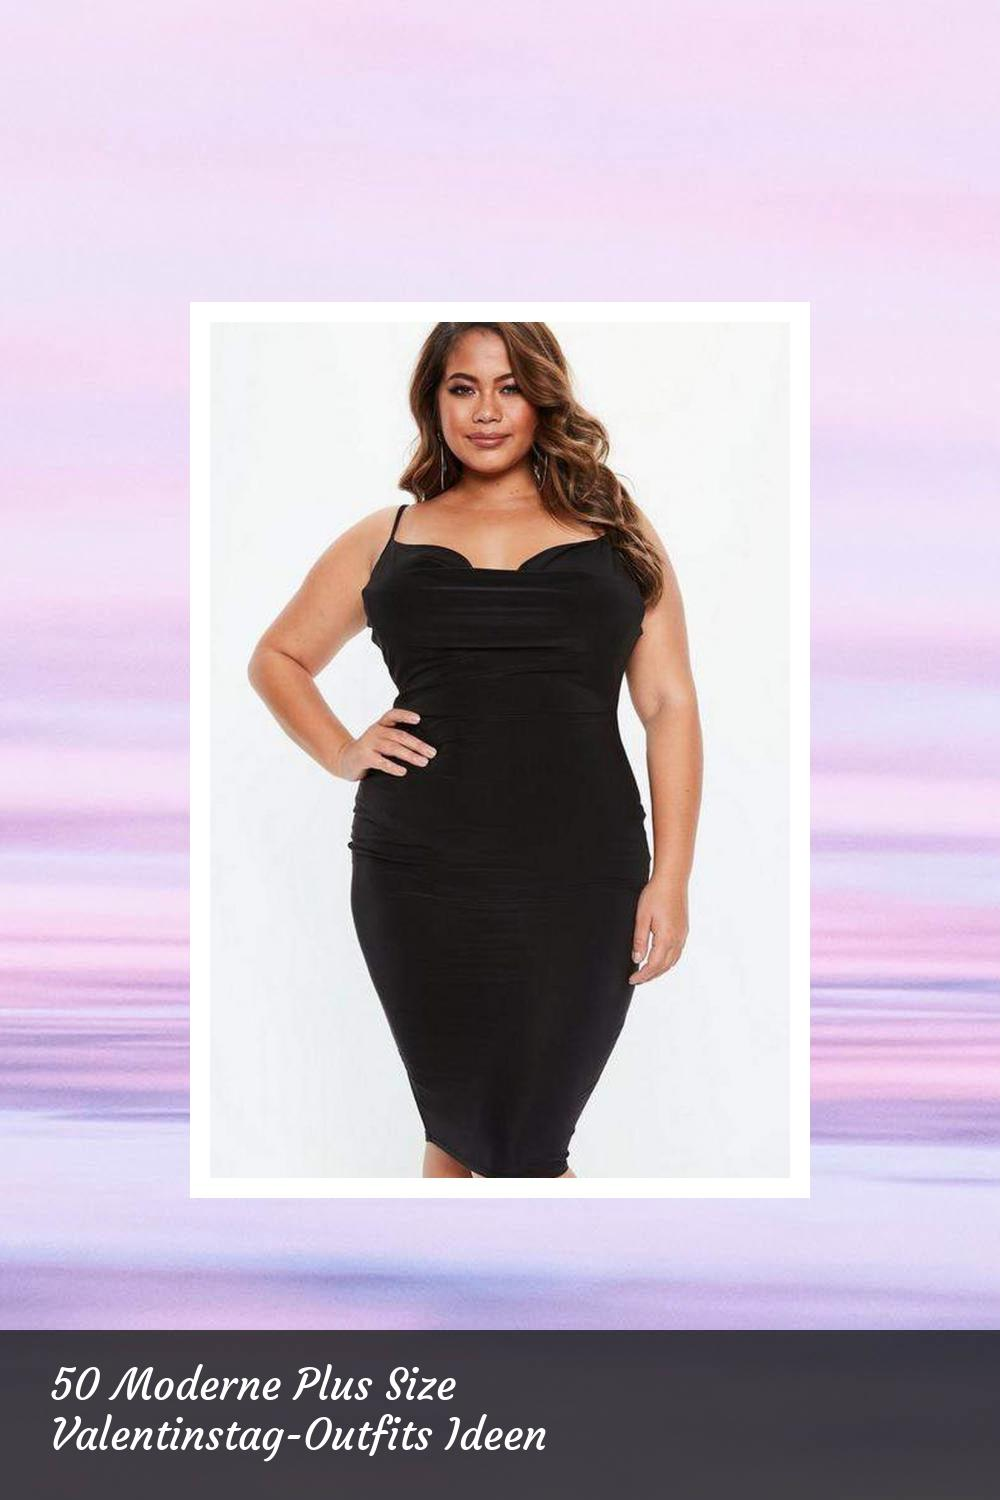 50 Moderne Plus Size Valentinstag-Outfits Ideen 5